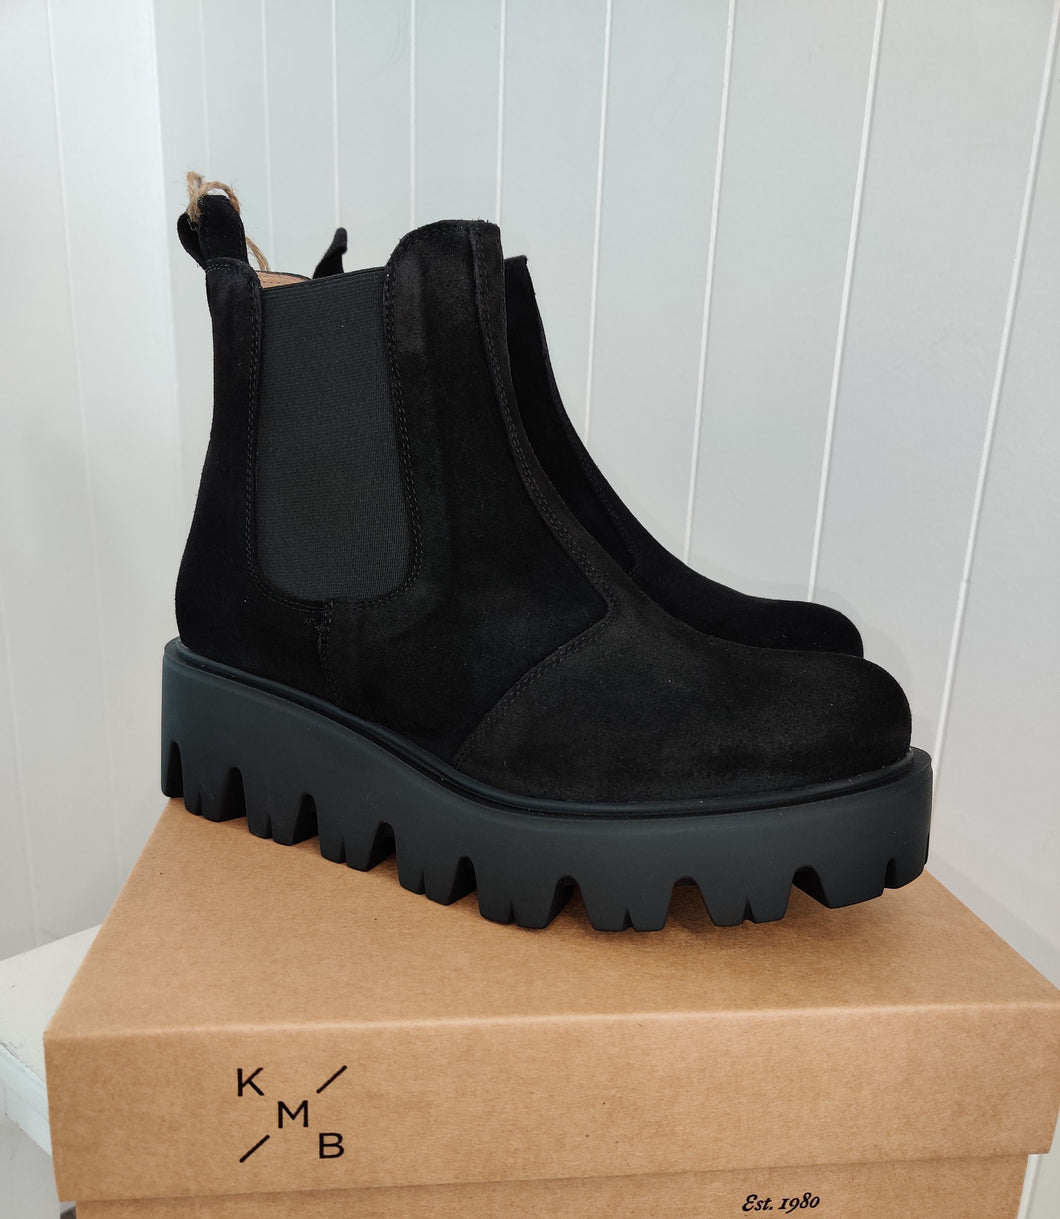 Tractor Sole Platform Boot in Black Suede - Renaissance Boutiques Ireland